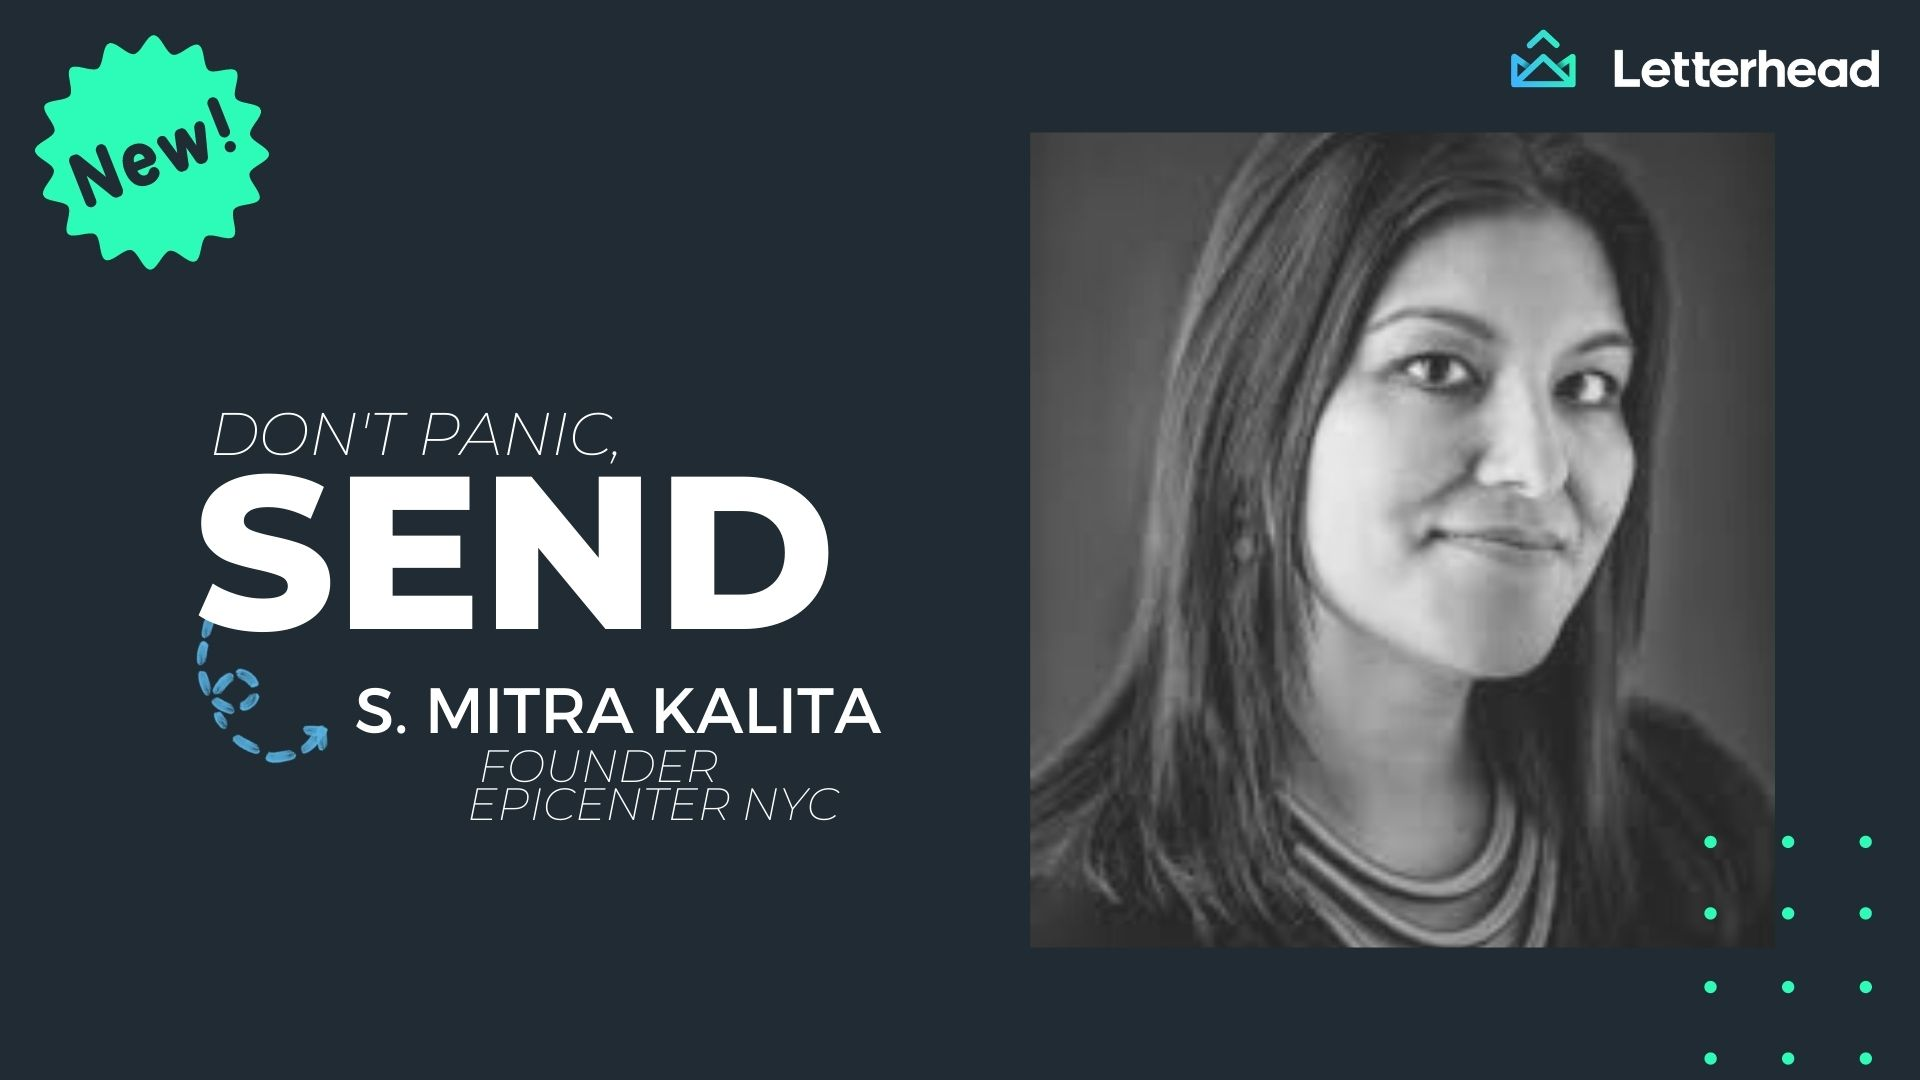 Don't panic send banner image with Mitra Kalita profile image.